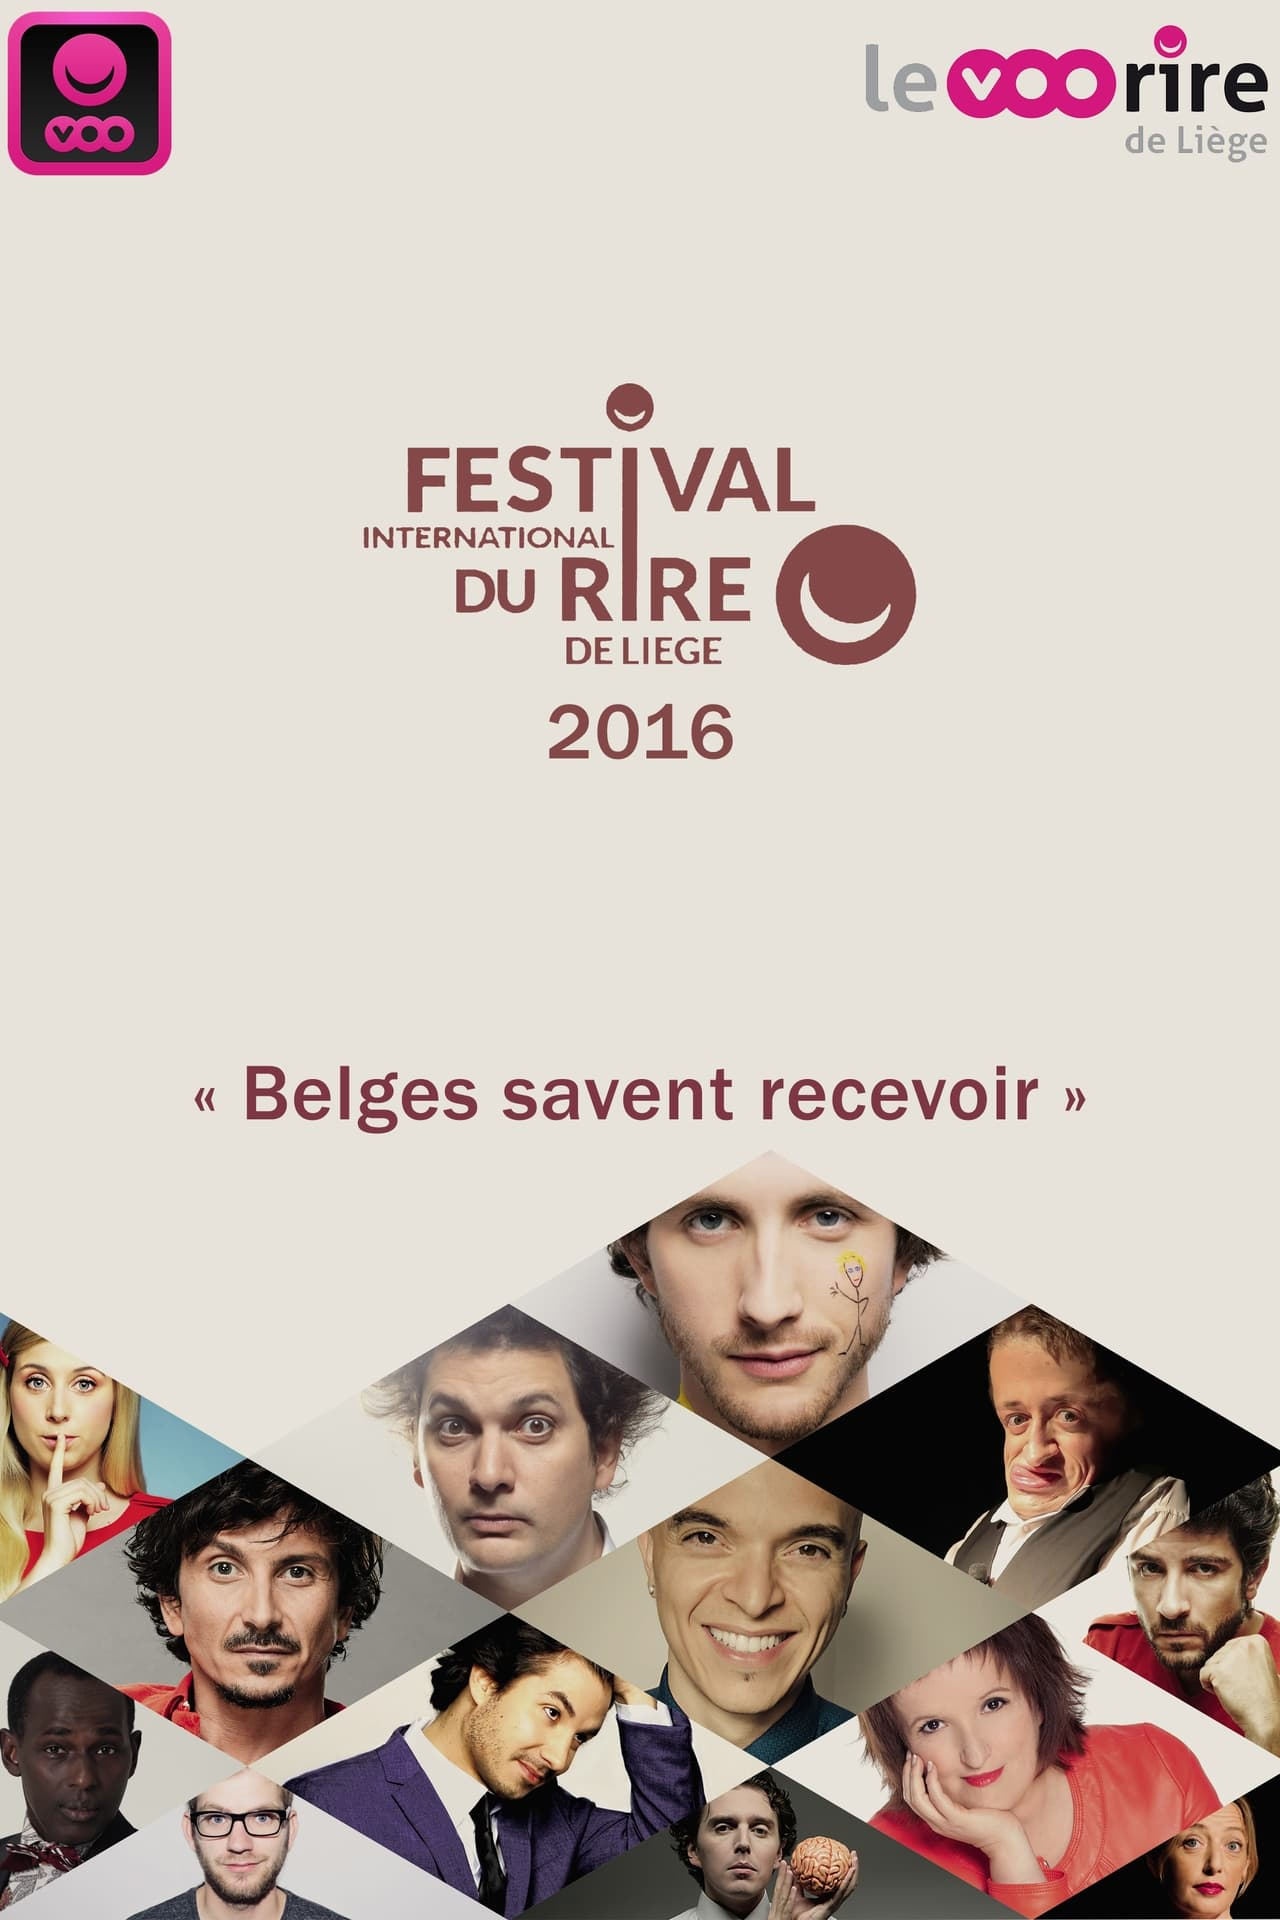 Festival International du Rire de Liège 2016